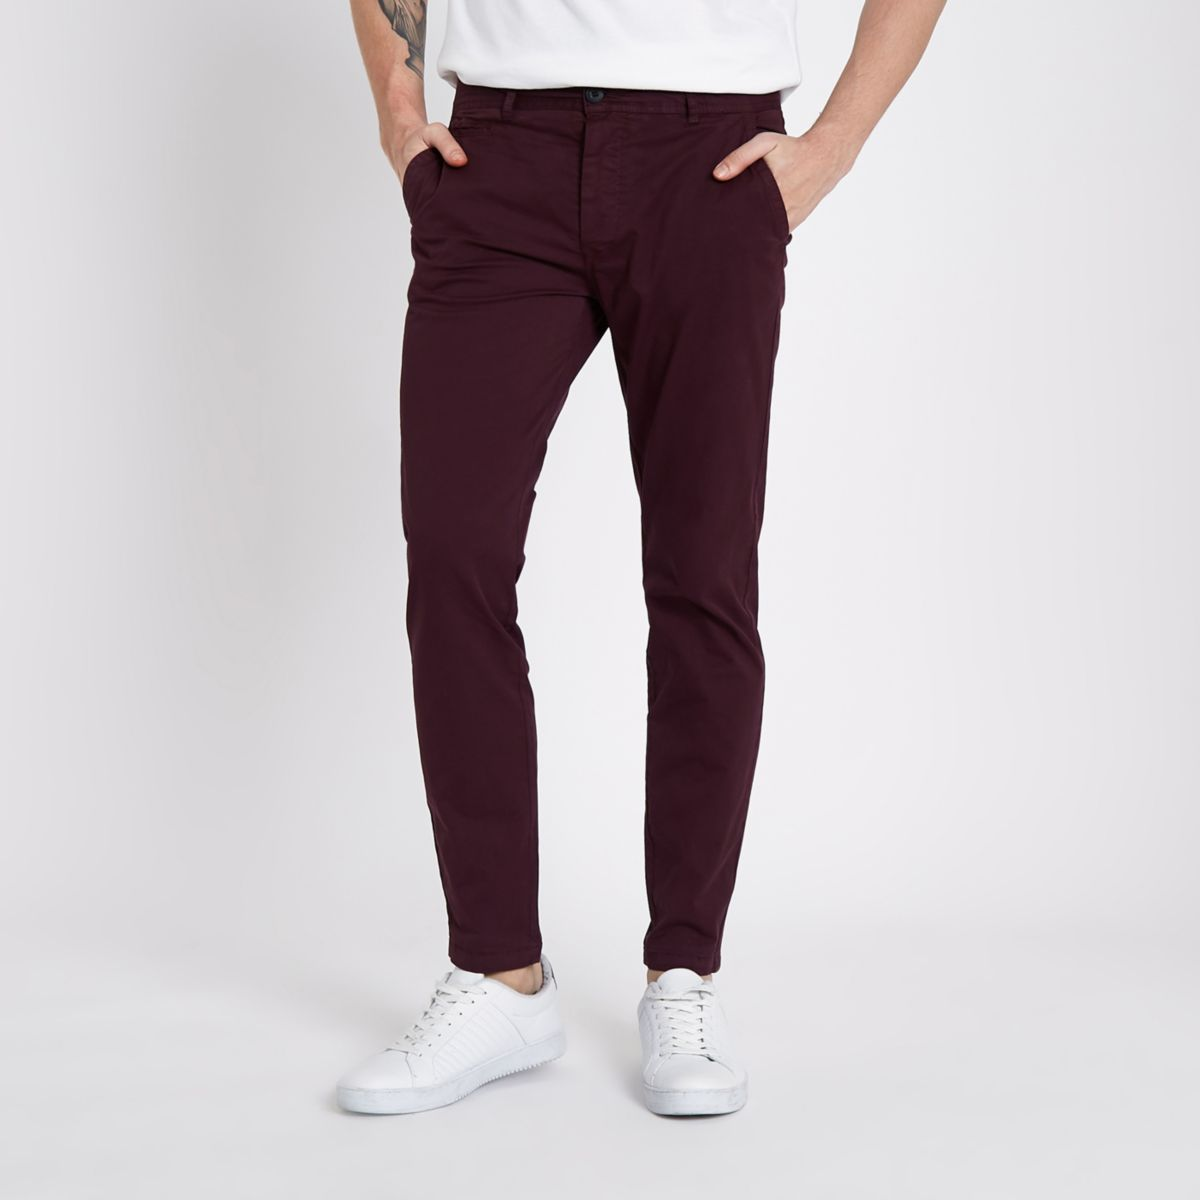 Burgundy super skinny stretch chino trousers